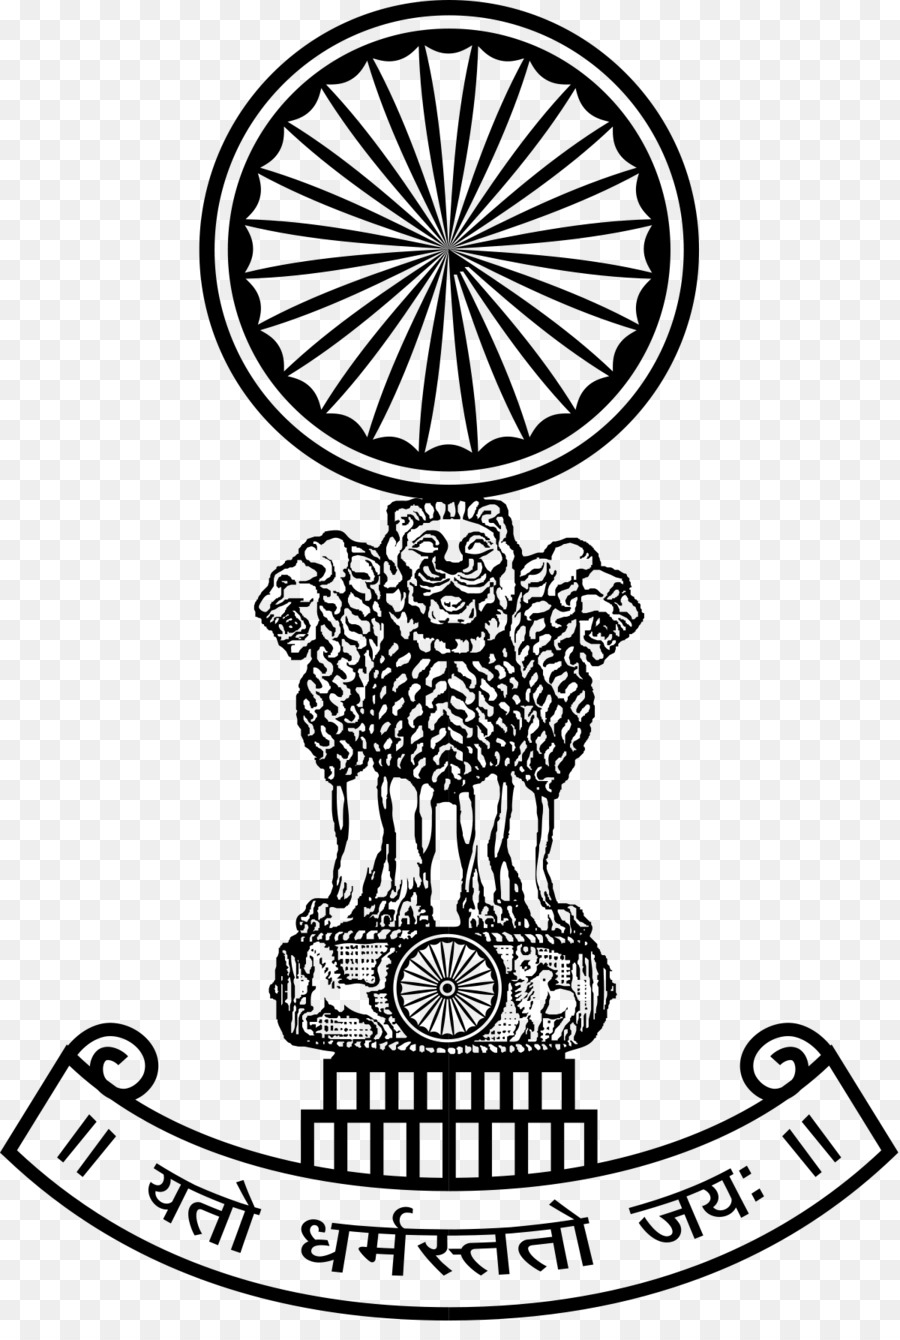 India National clipart.